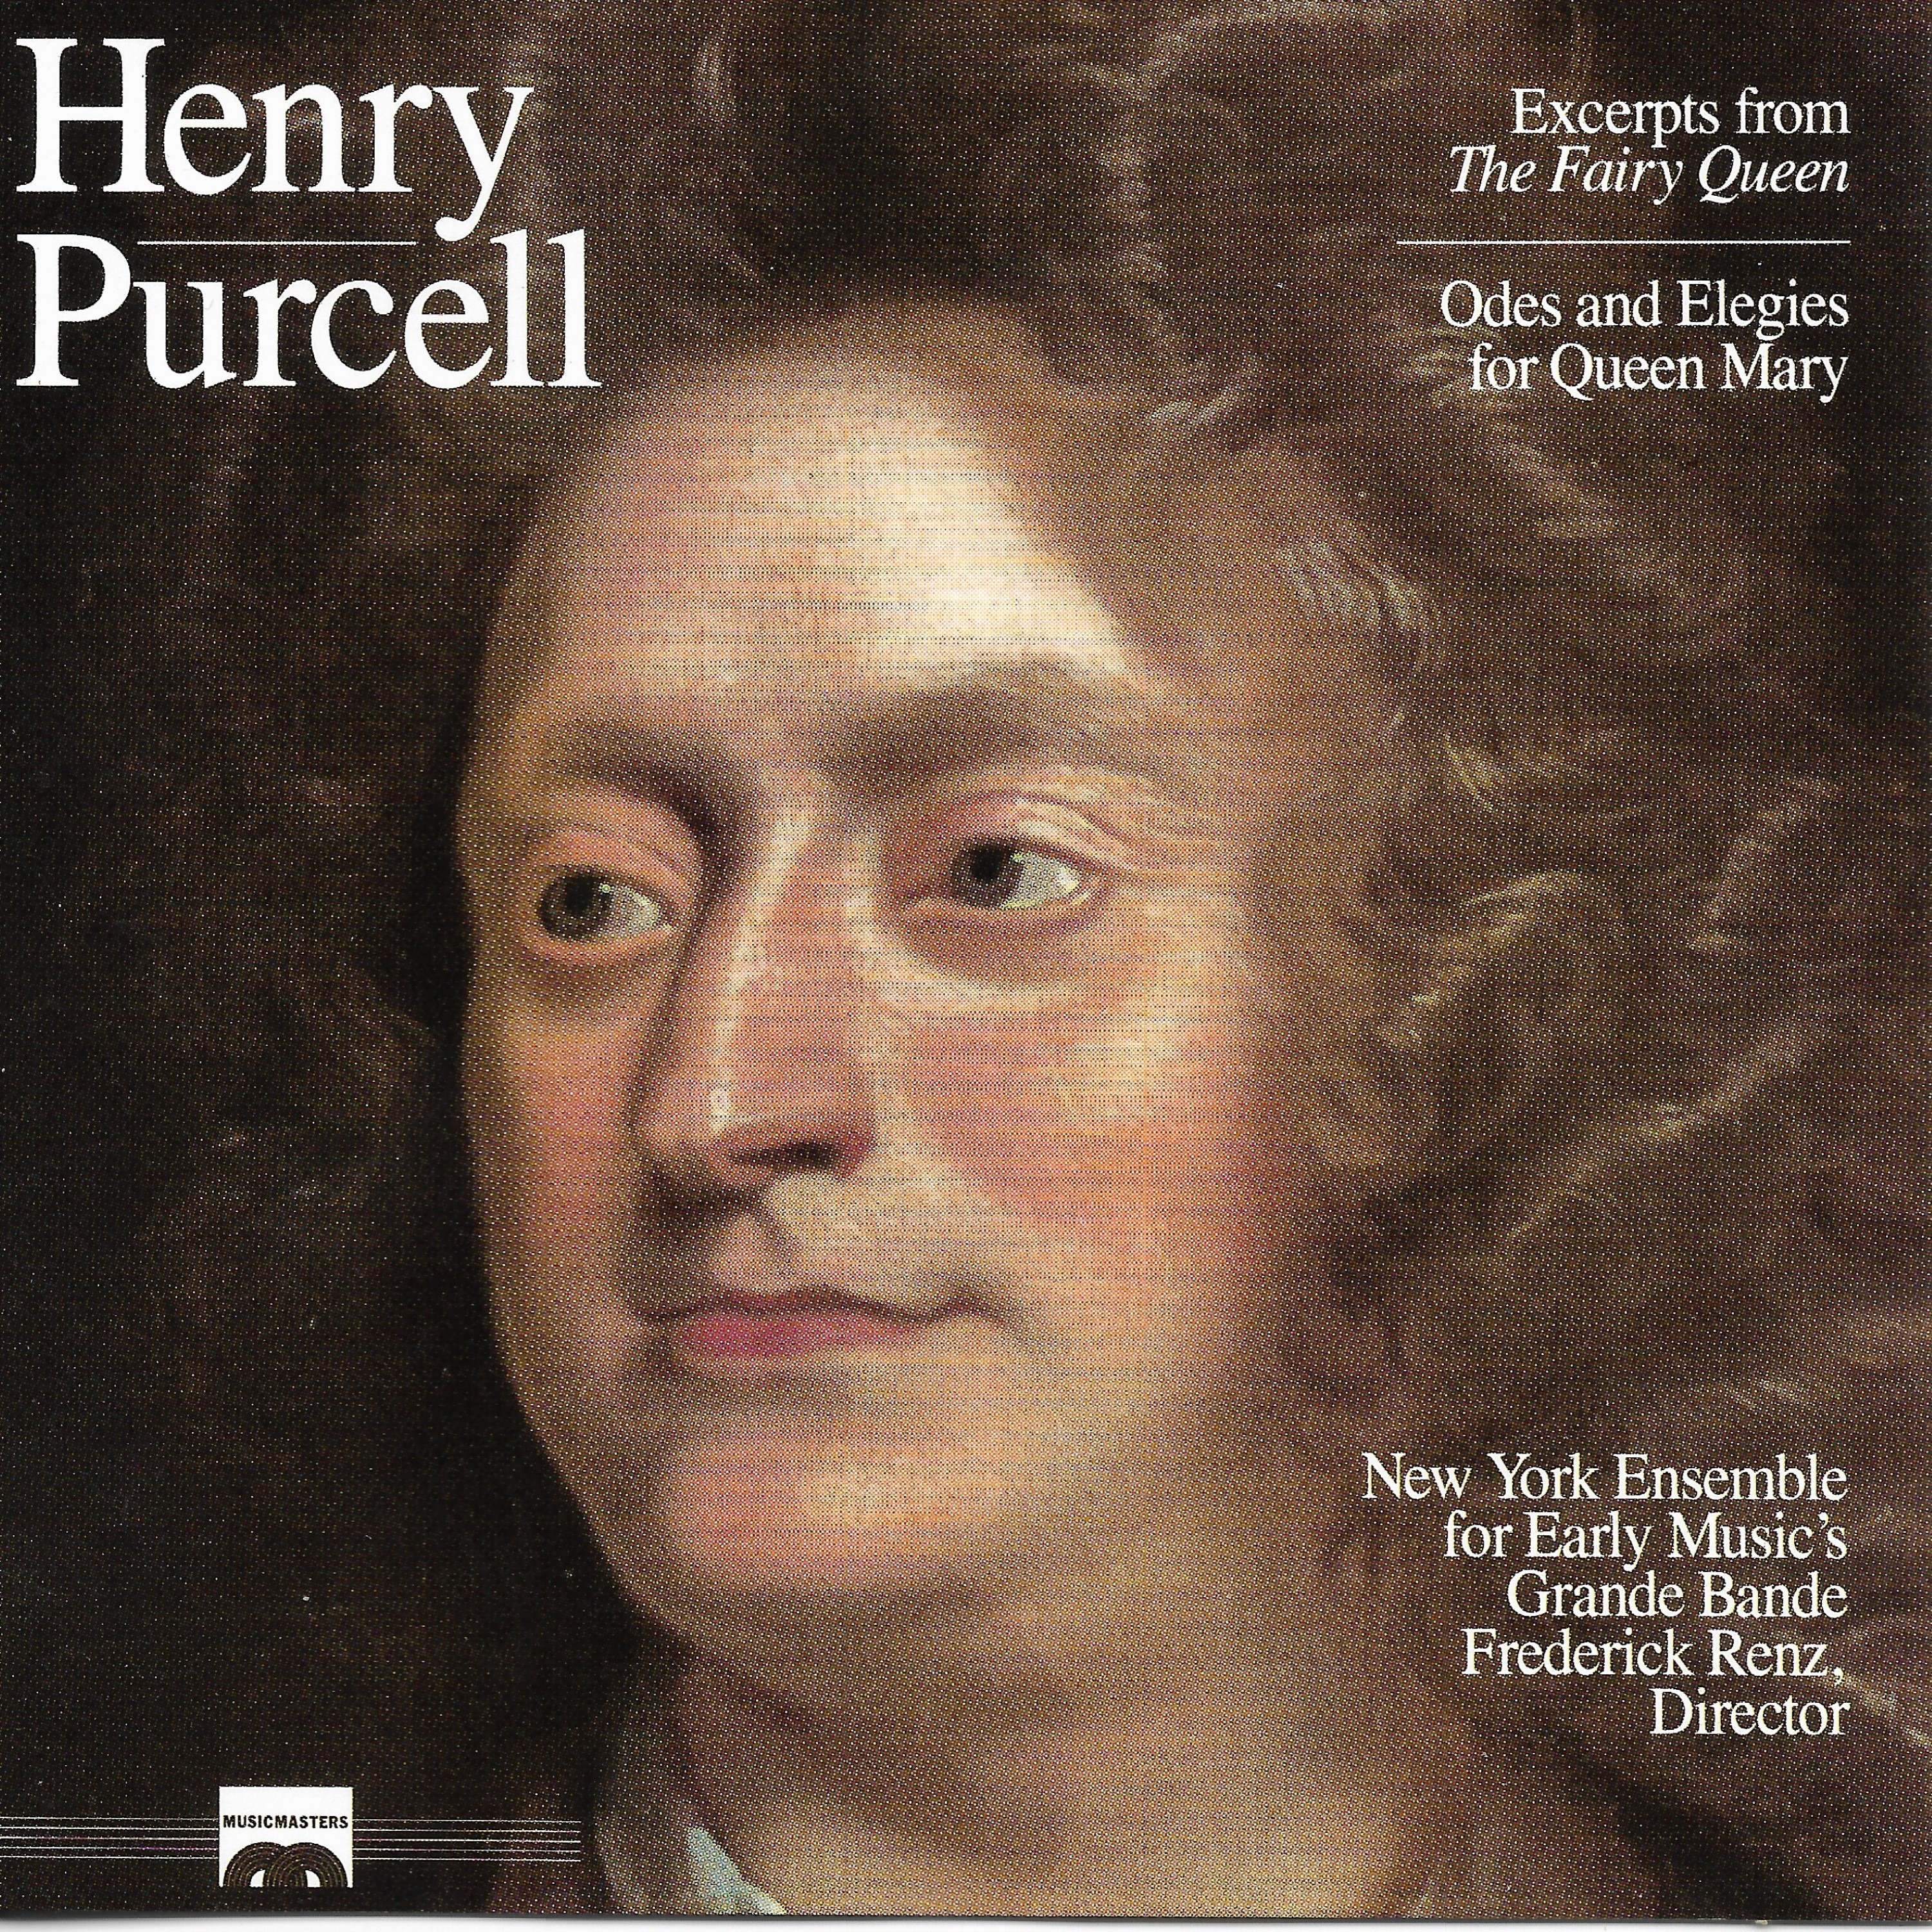 purcell fred renz